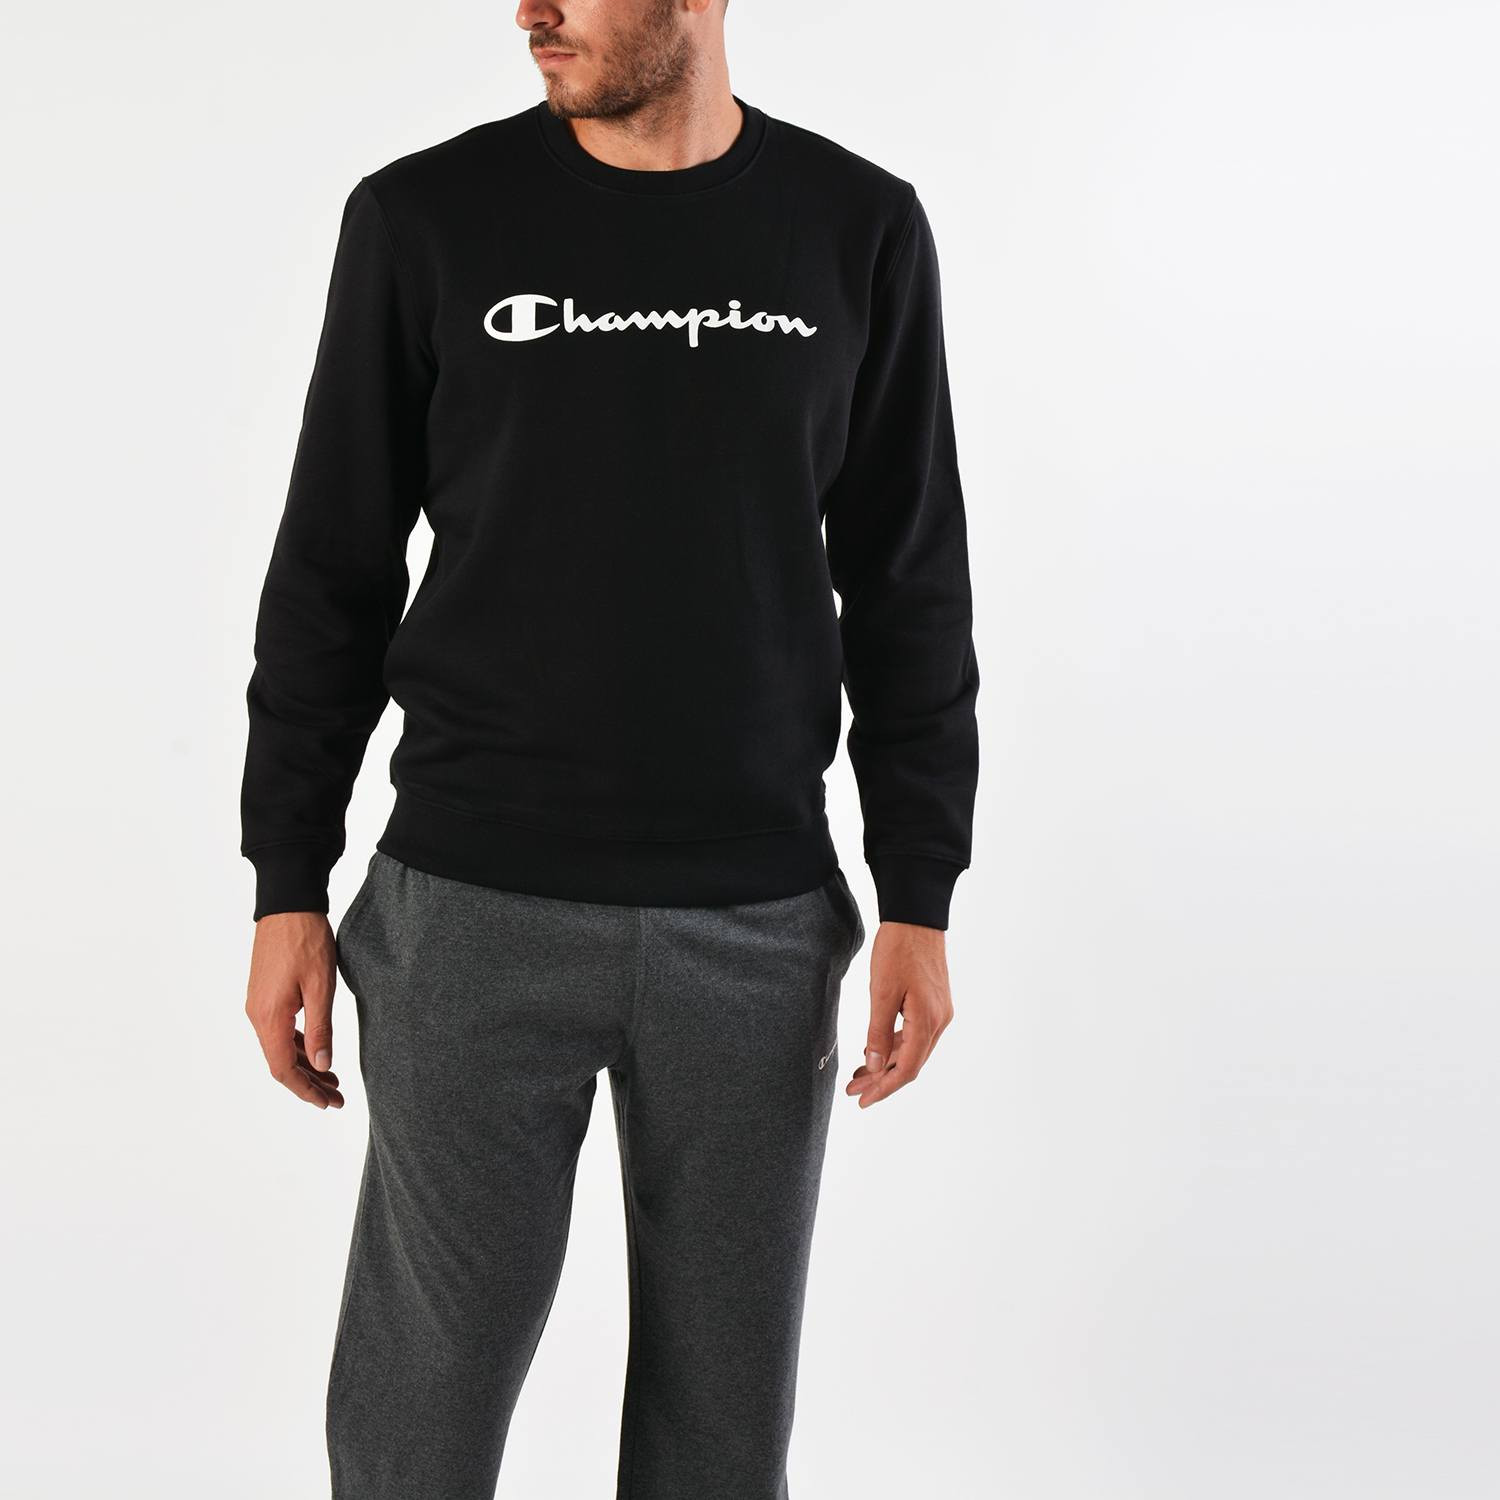 Champion Crewneck Sweatshirt (9000018063_1862)